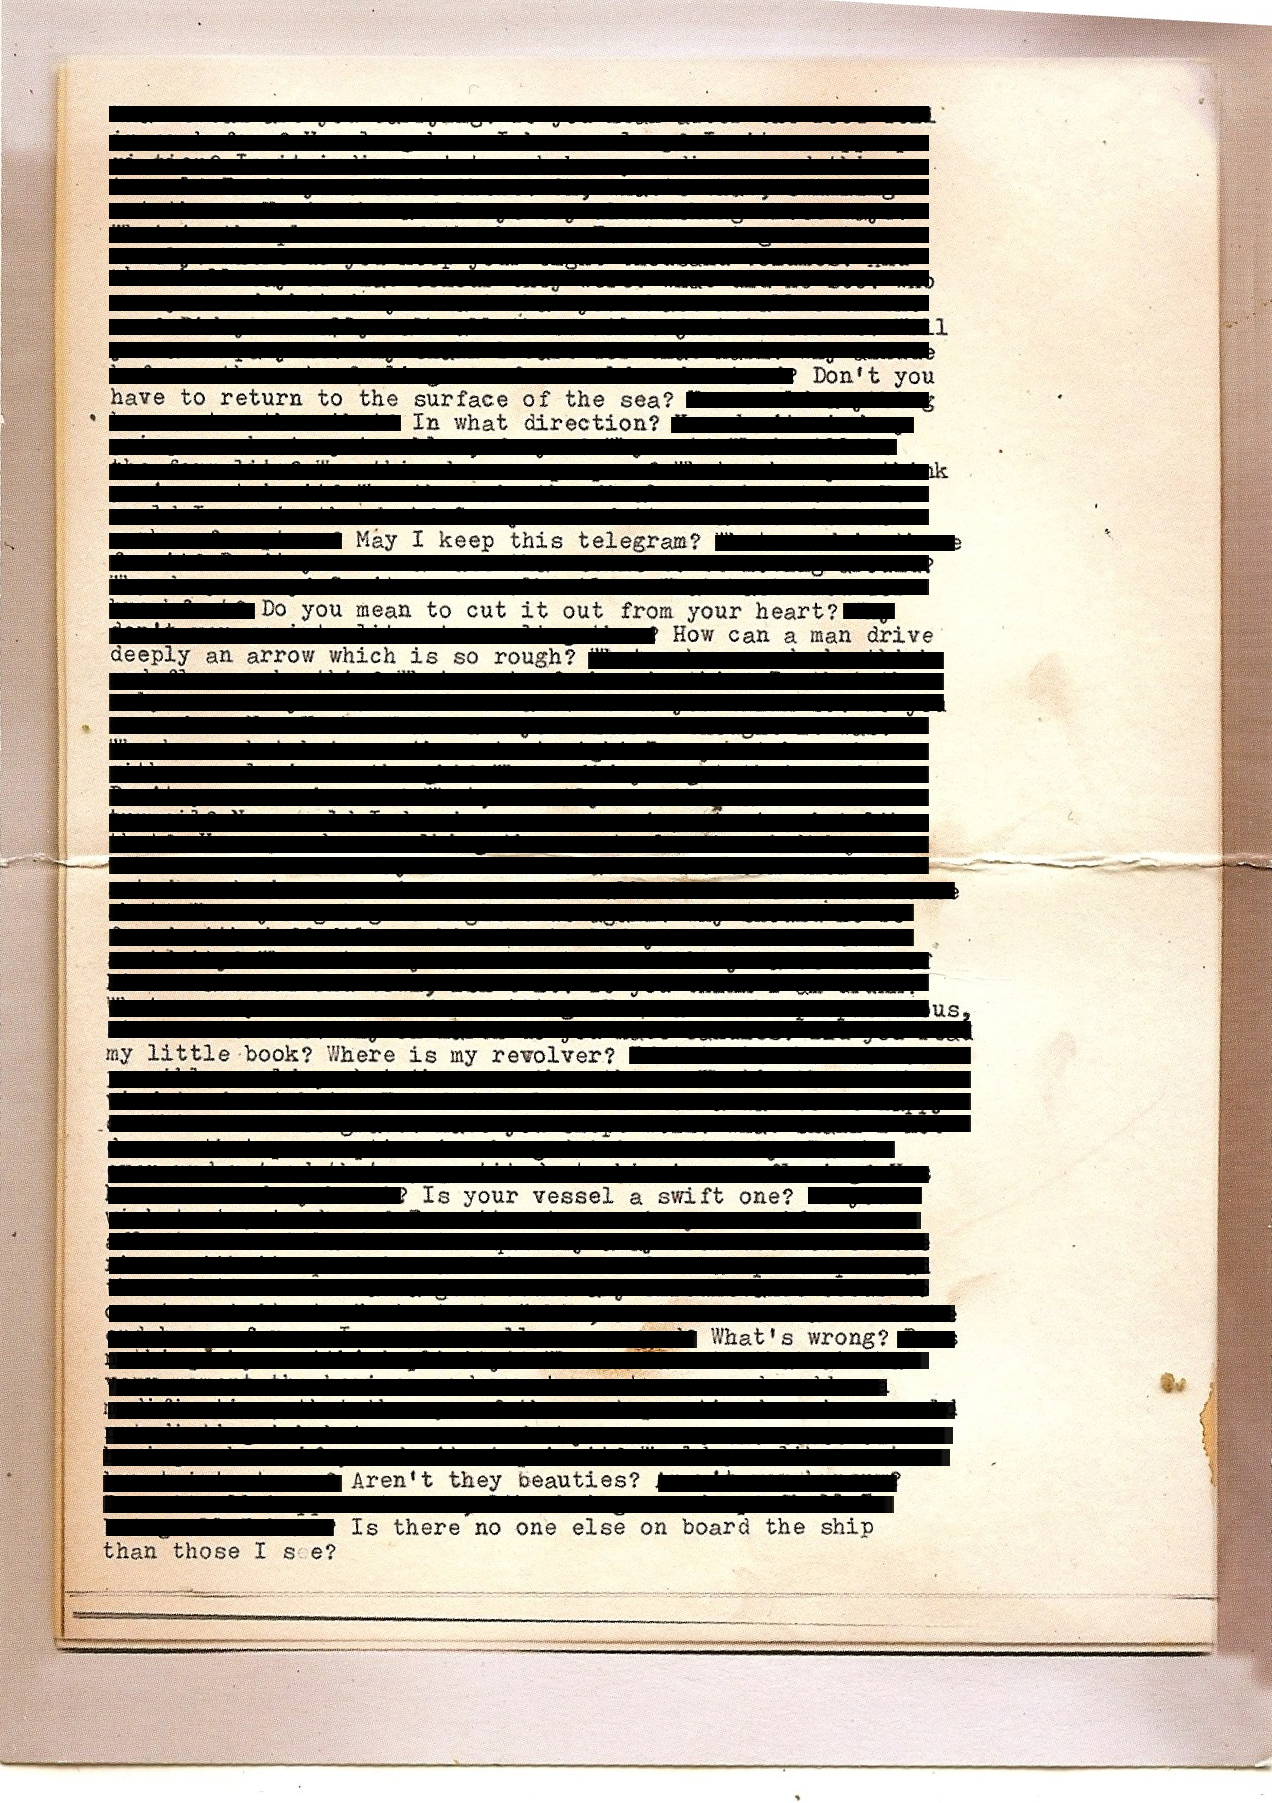 Redaction studies can be very powerful, and I chose to go into the redaction art in 2012 as part of the Occupy Movement.